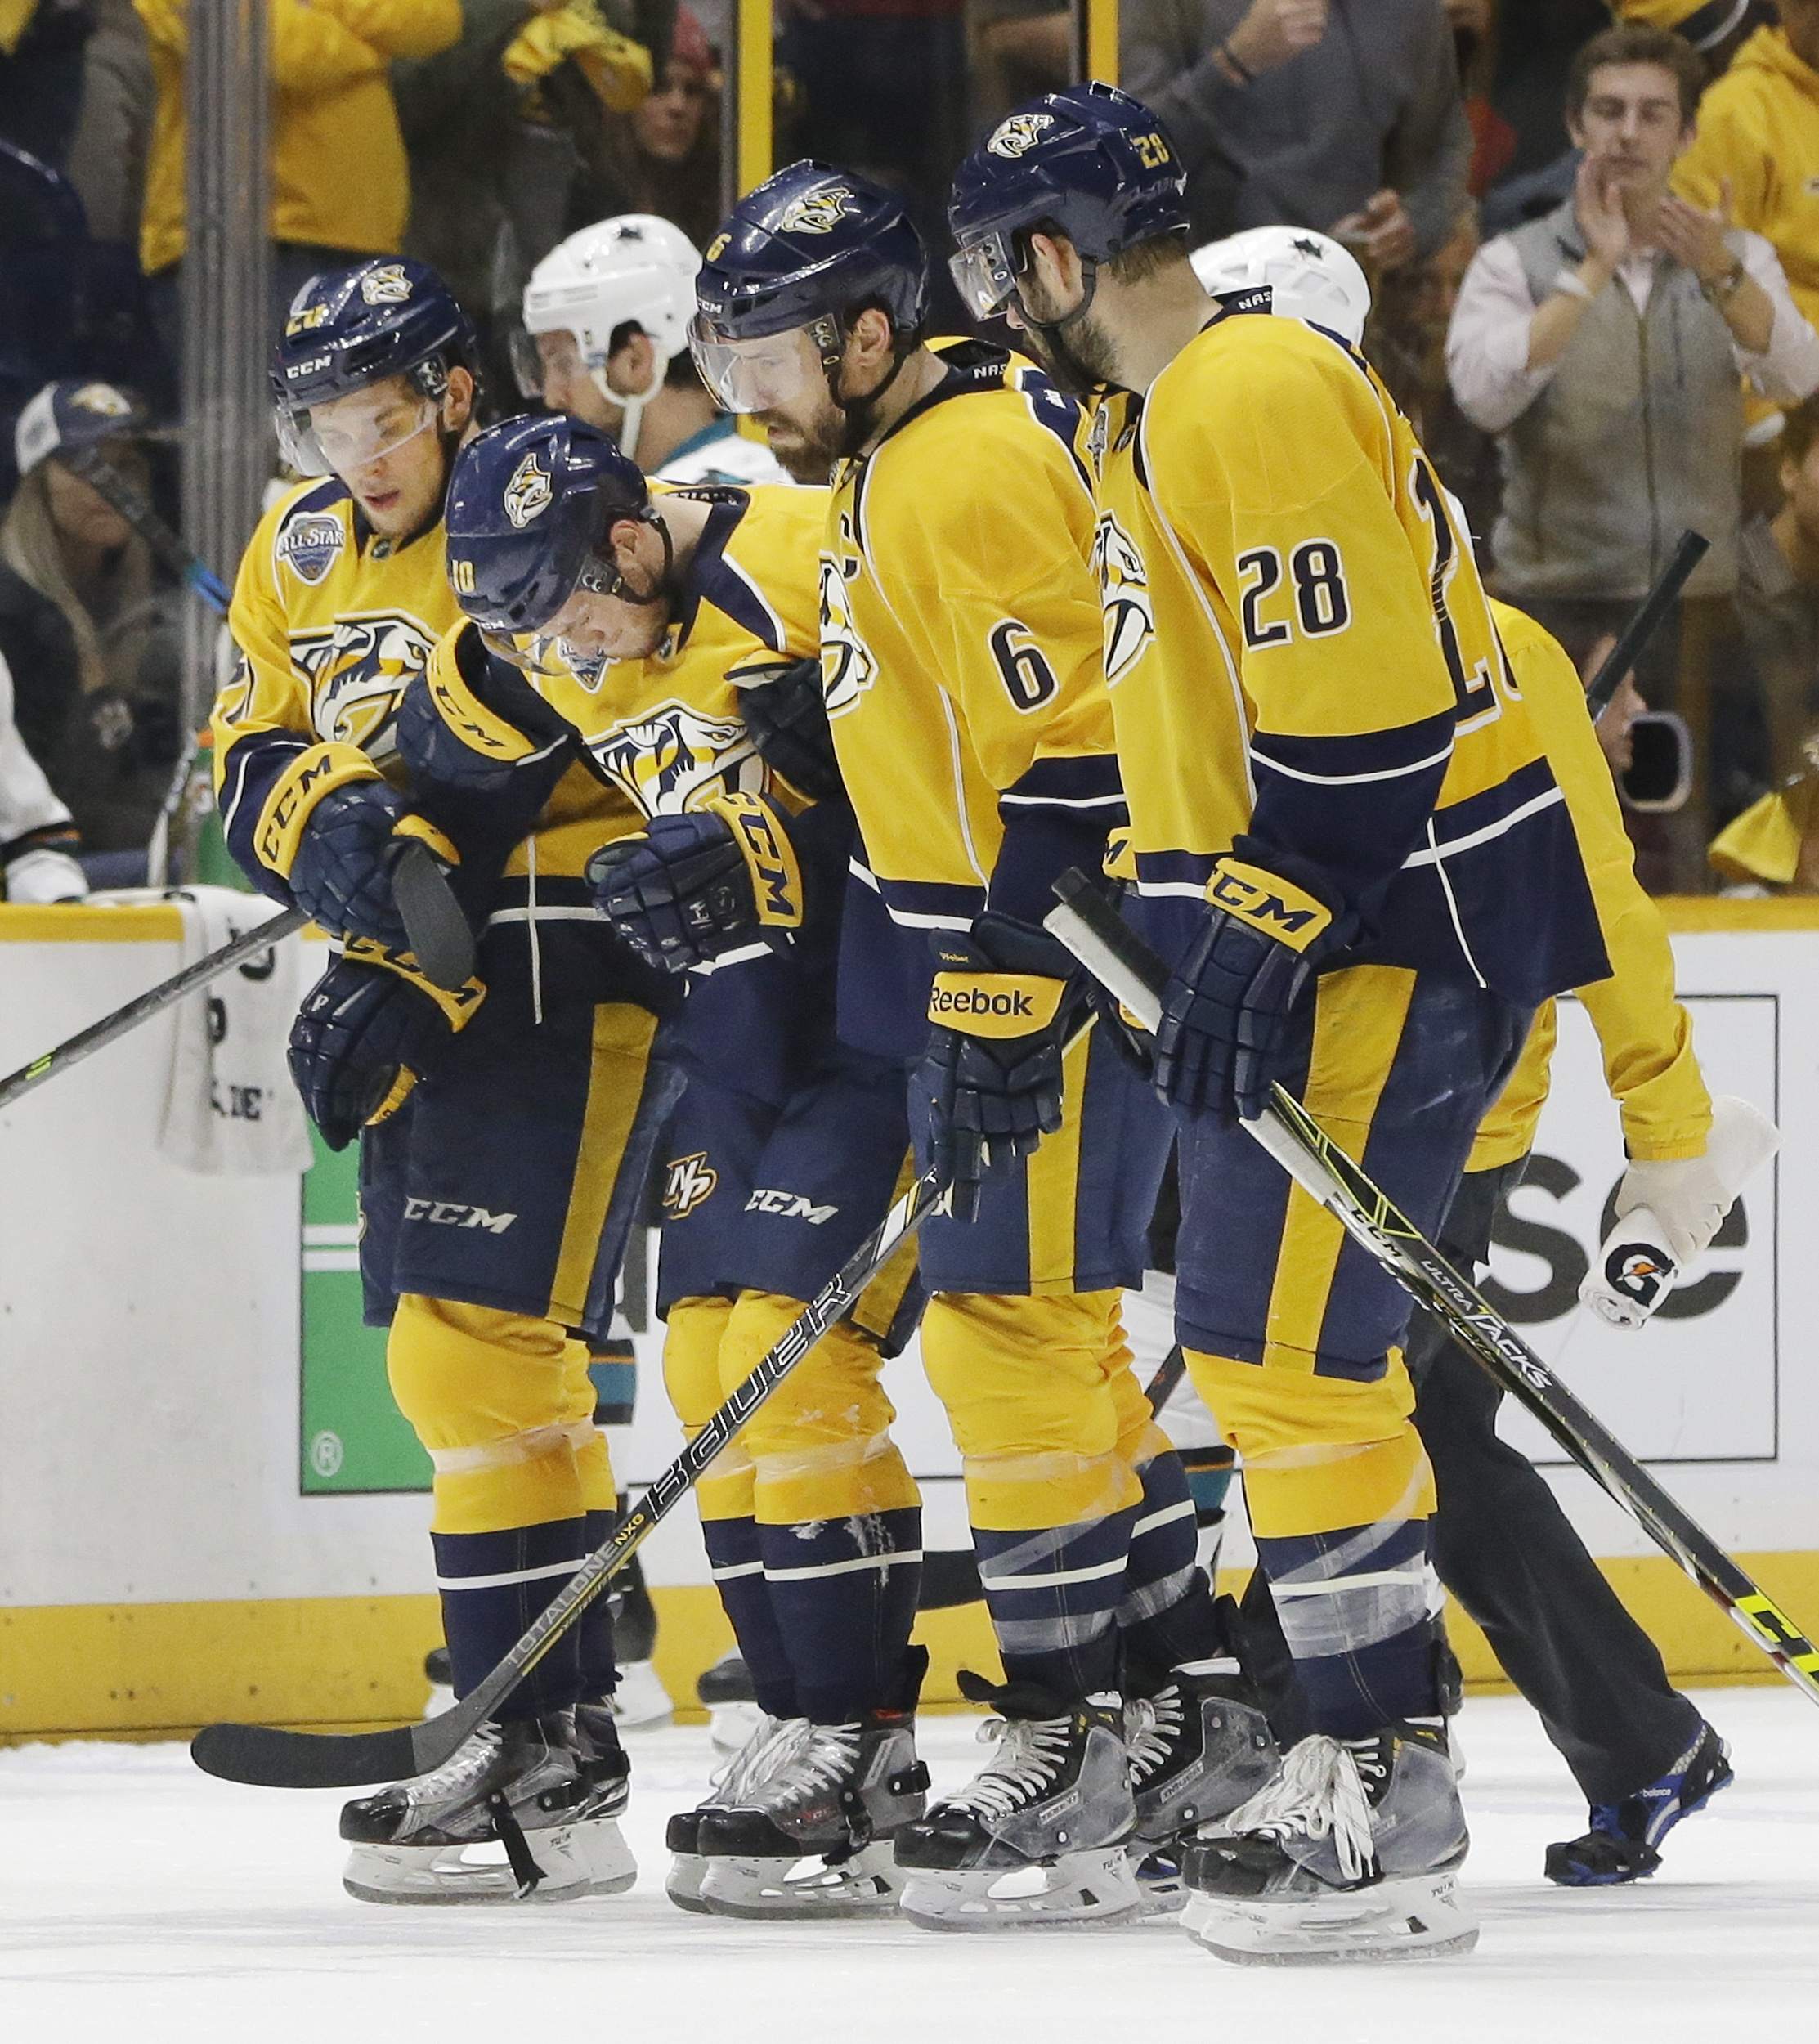 Nashville Predators center Colton Sissons, second from left, is helped off the ice by Miikka Salomaki (20), of Finland, left, Shea Weber (6) and Paul Gaustad (28) after Sissons was injured during the third period in Game 3 of an NHL hockey Stanley Cup Wes